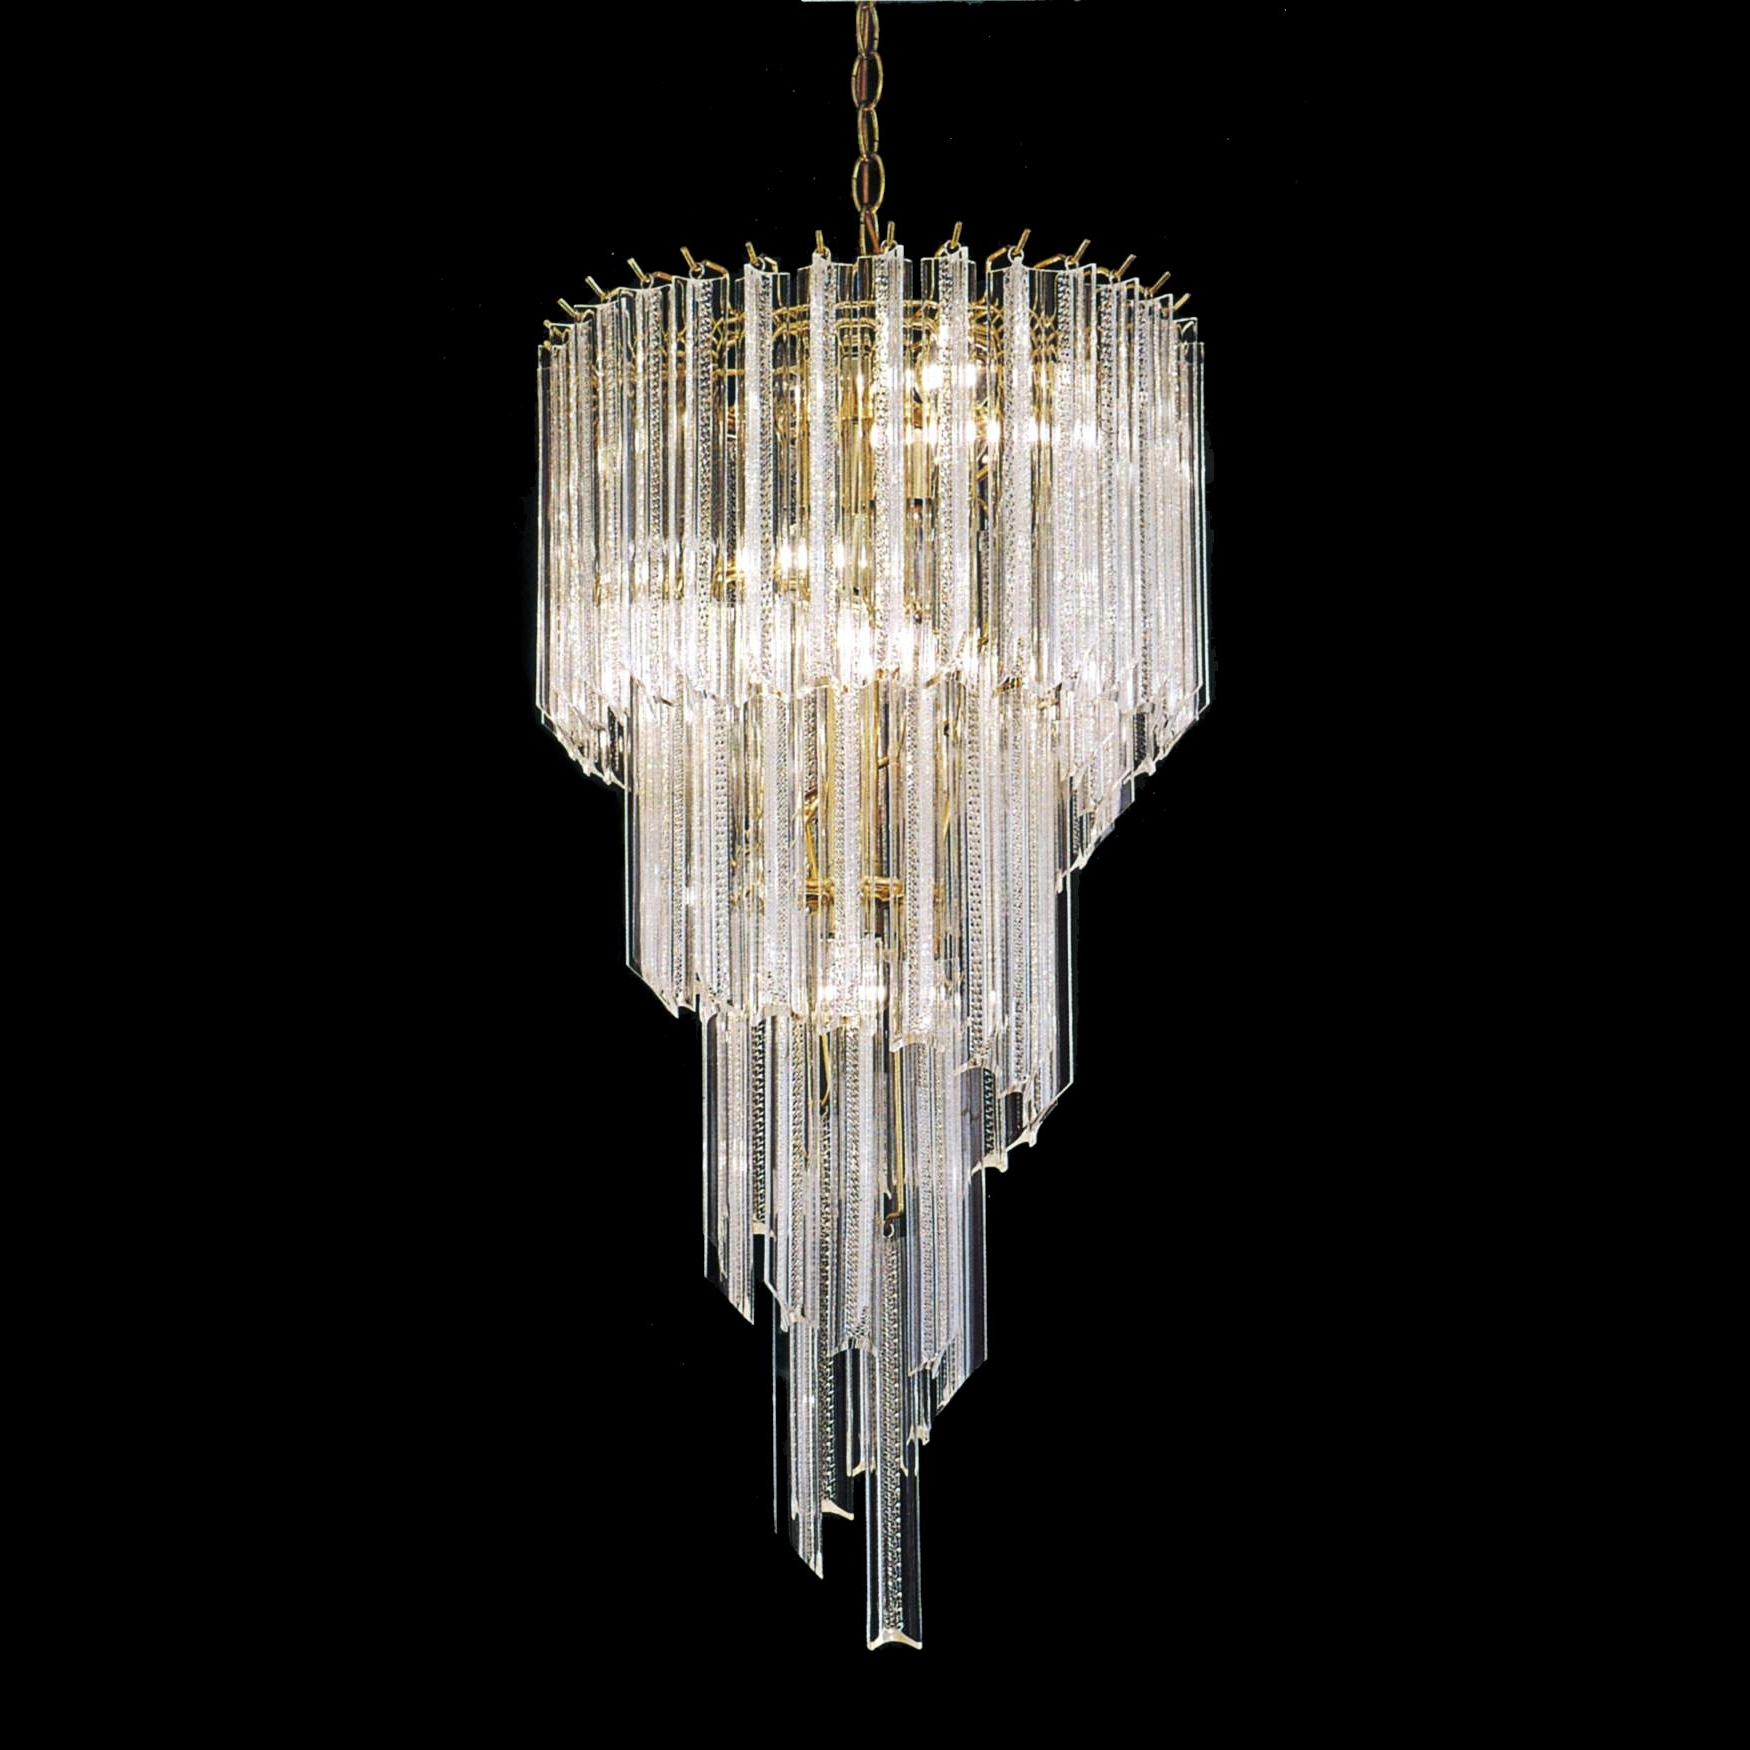 Acrylic Chandeliers For Recent Chandeliers Design : Marvelous Acrylic Light Polished Brass Spiral (View 2 of 20)